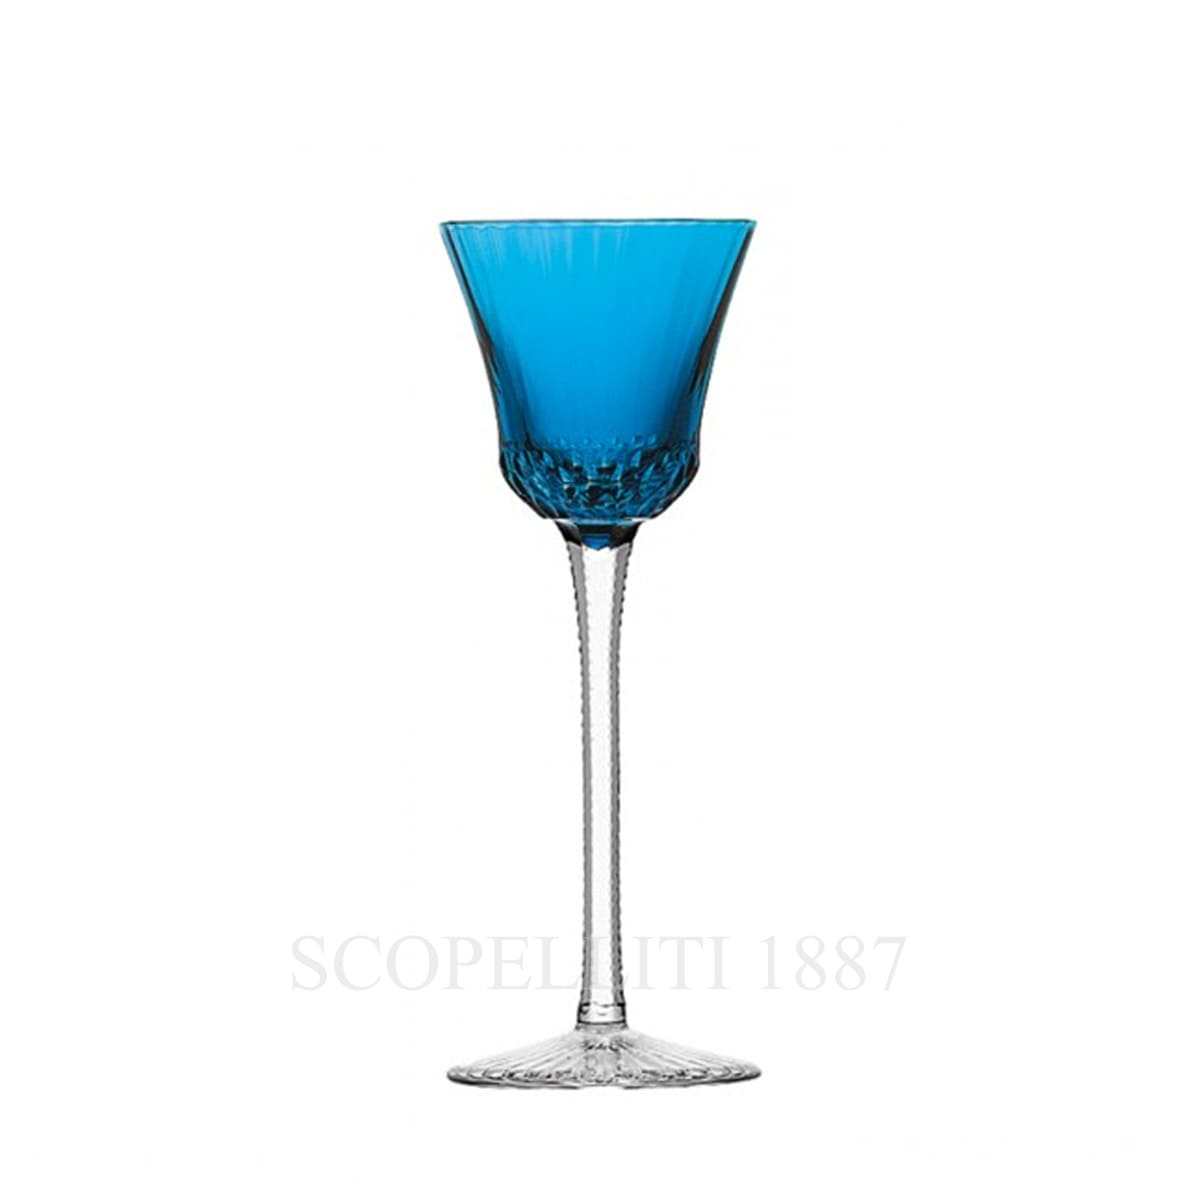 saint louis apollo light blue crystal roemer wine glass